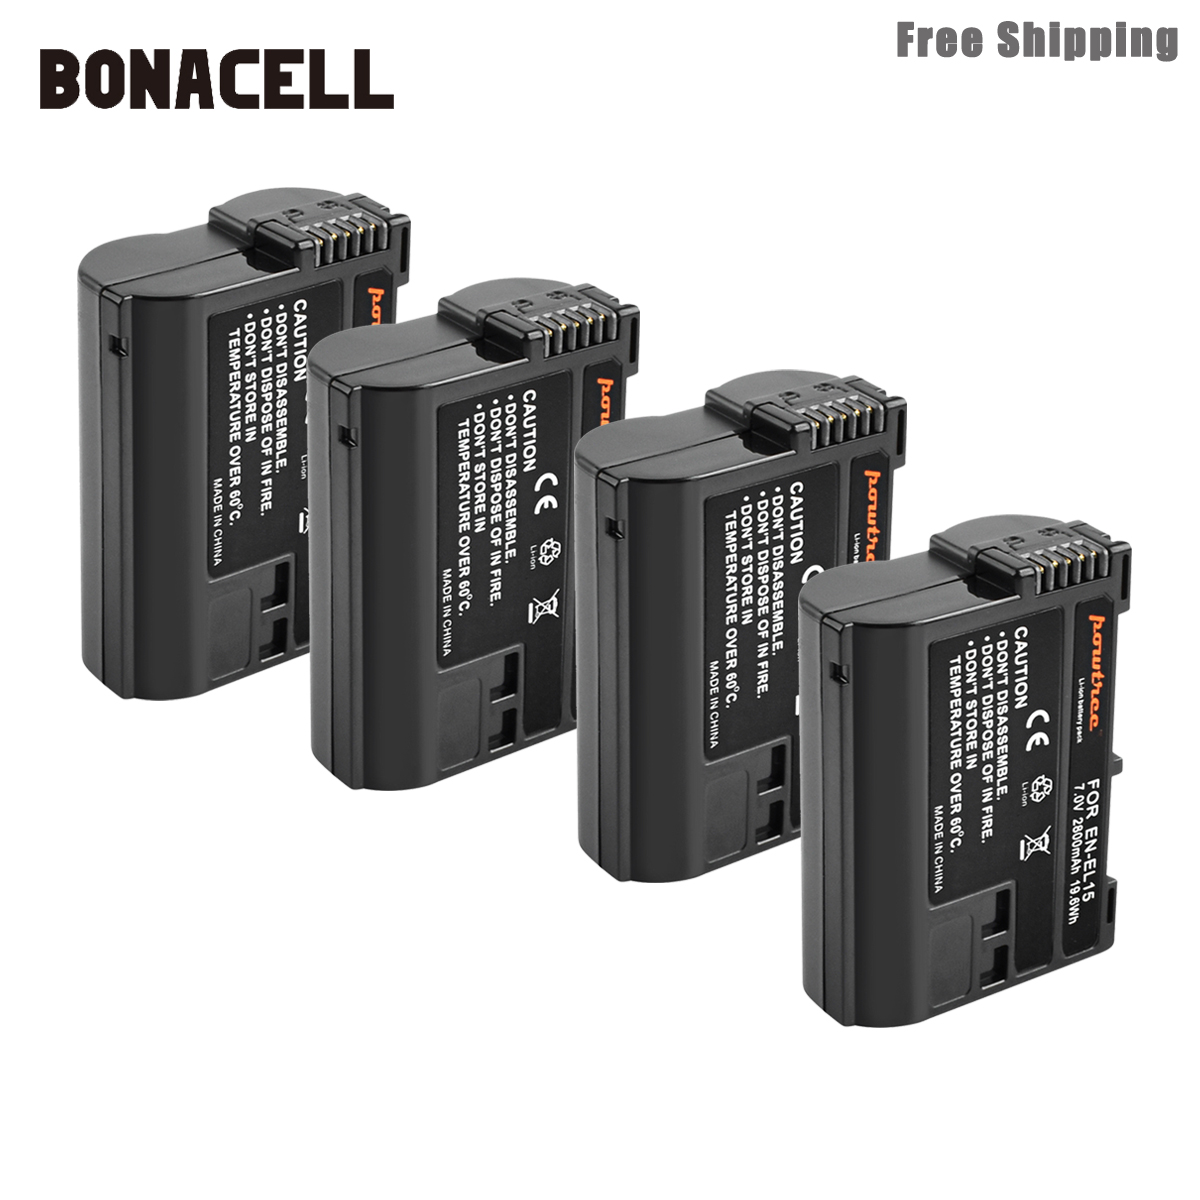 Image 3 - Bonacell 2800mAh EN EL15 ENEL15 EN EL15 Camera Battery For Nikon DSLR D600 D610 D800 D800E D810 D7000 D7100 D7200 L15-in Digital Batteries from Consumer Electronics